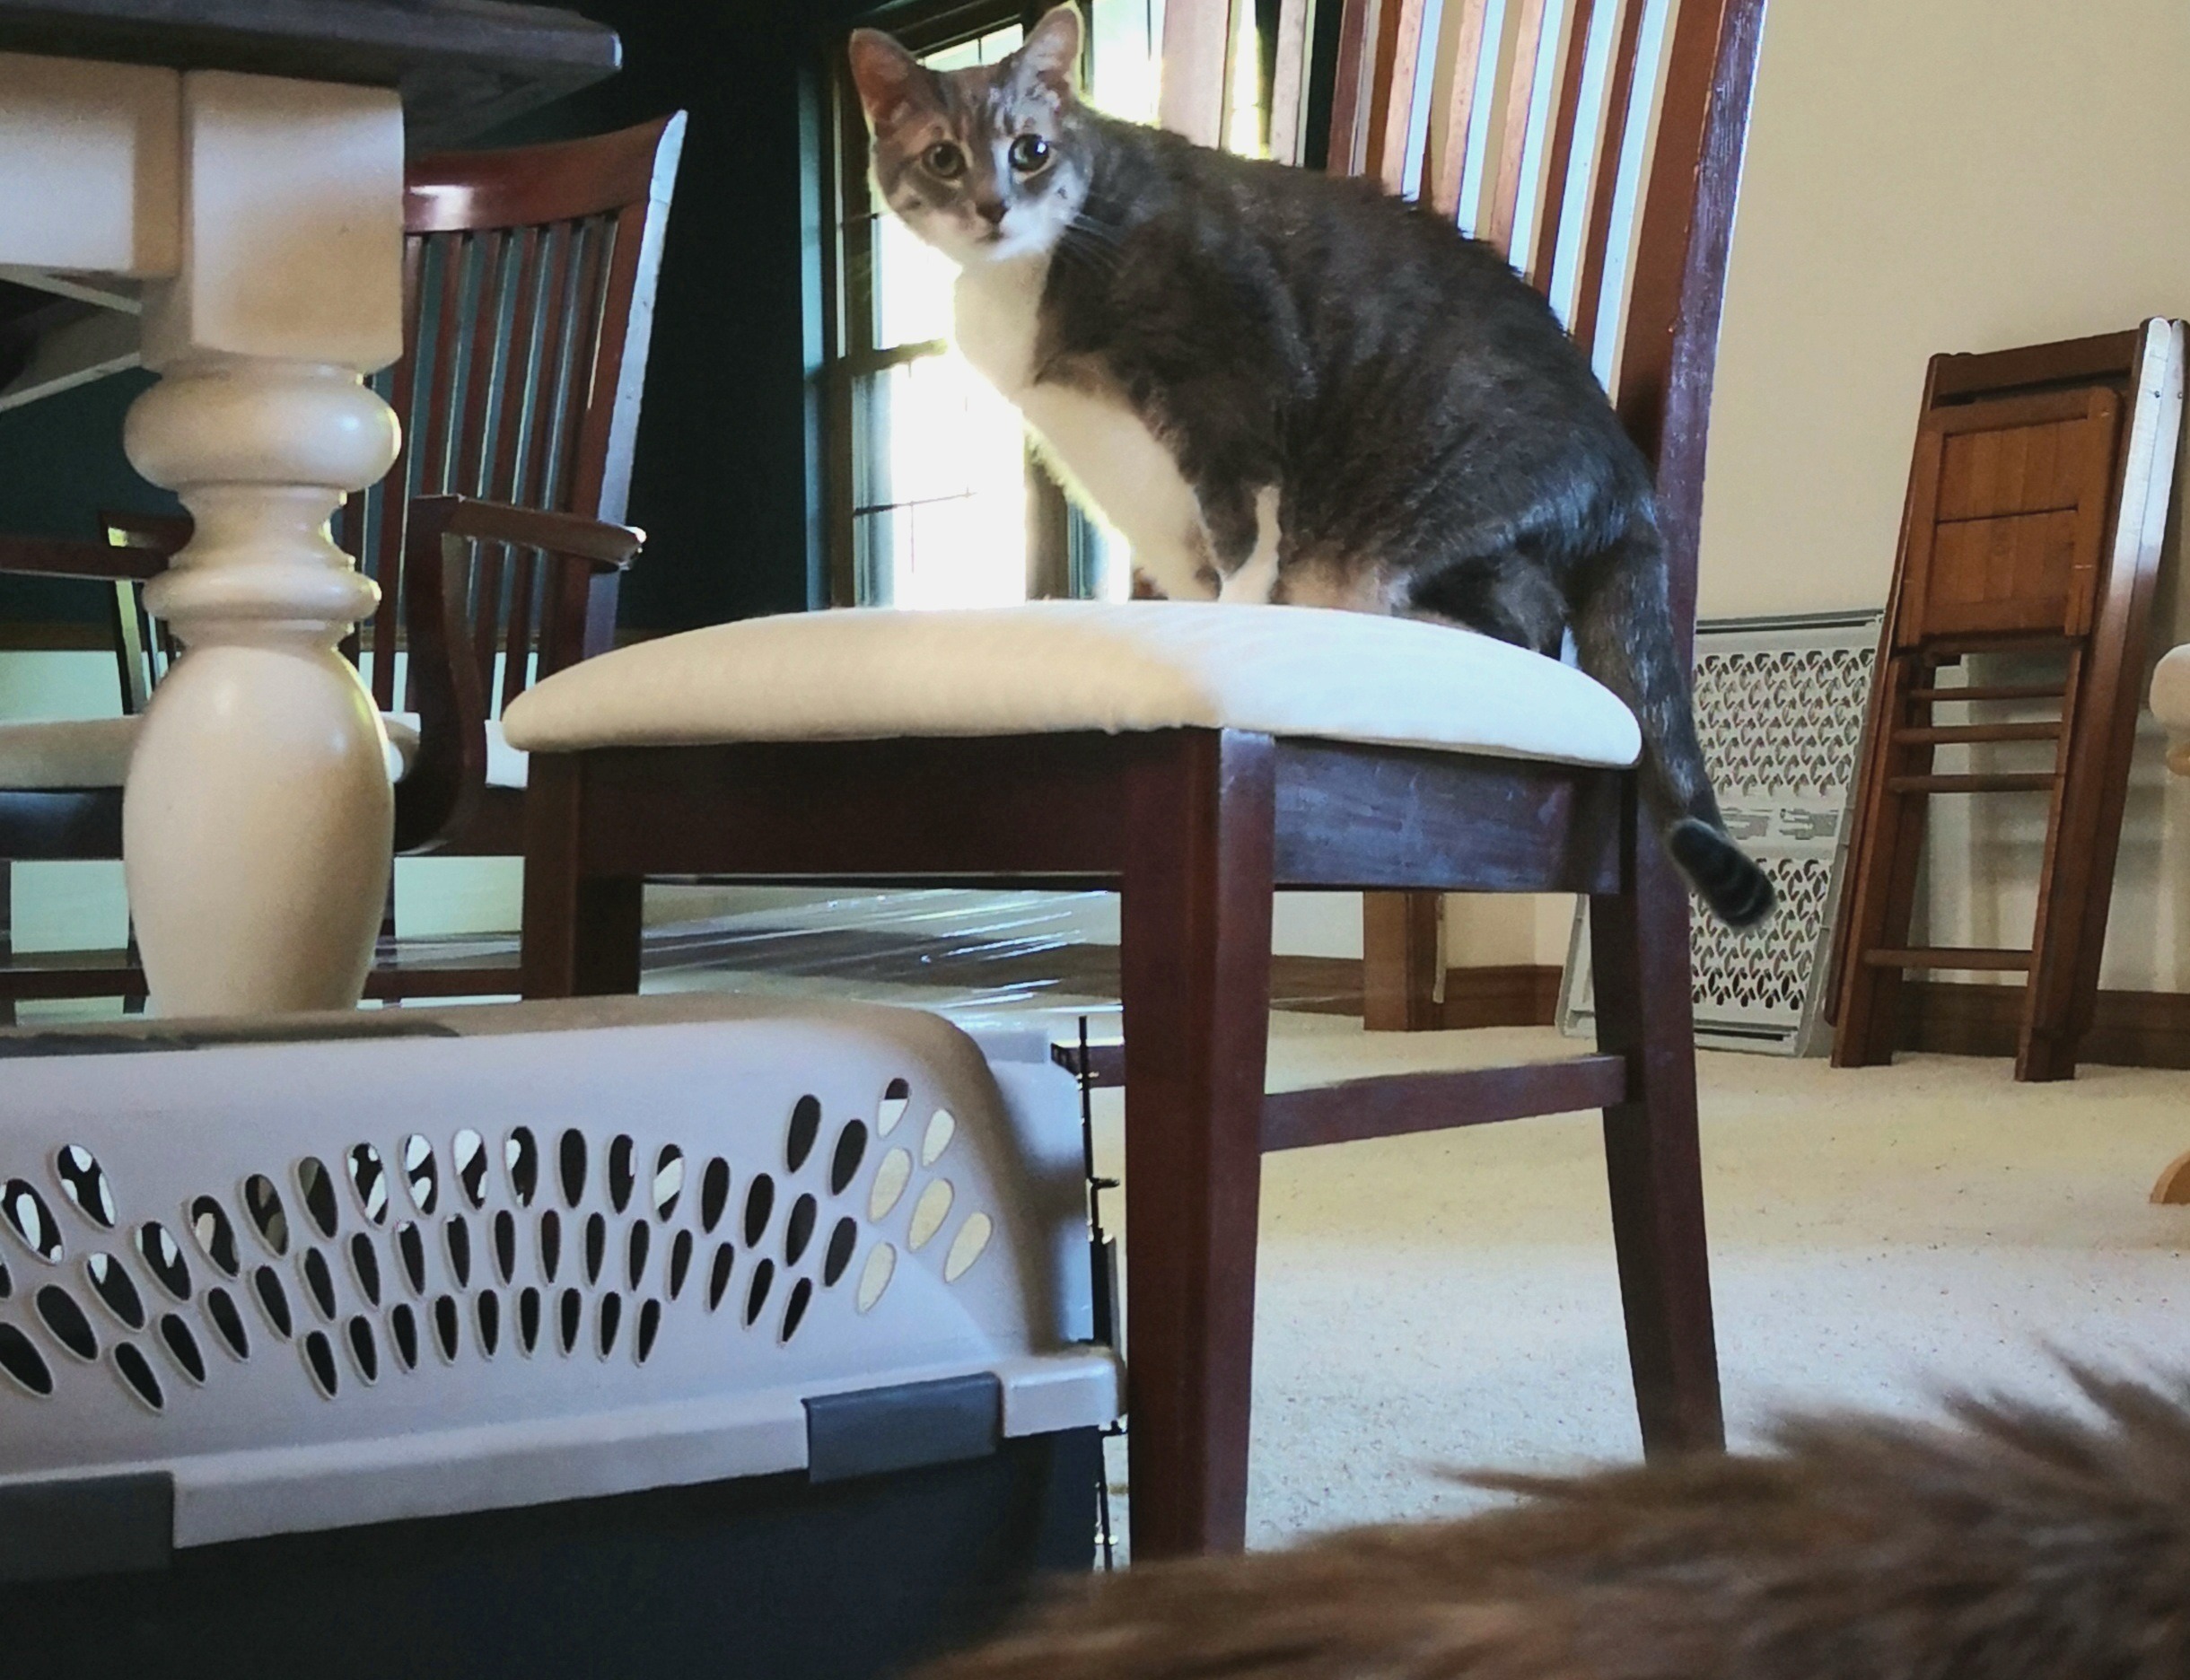 Cat asserting dominance by getting on high ground as another cat approaches